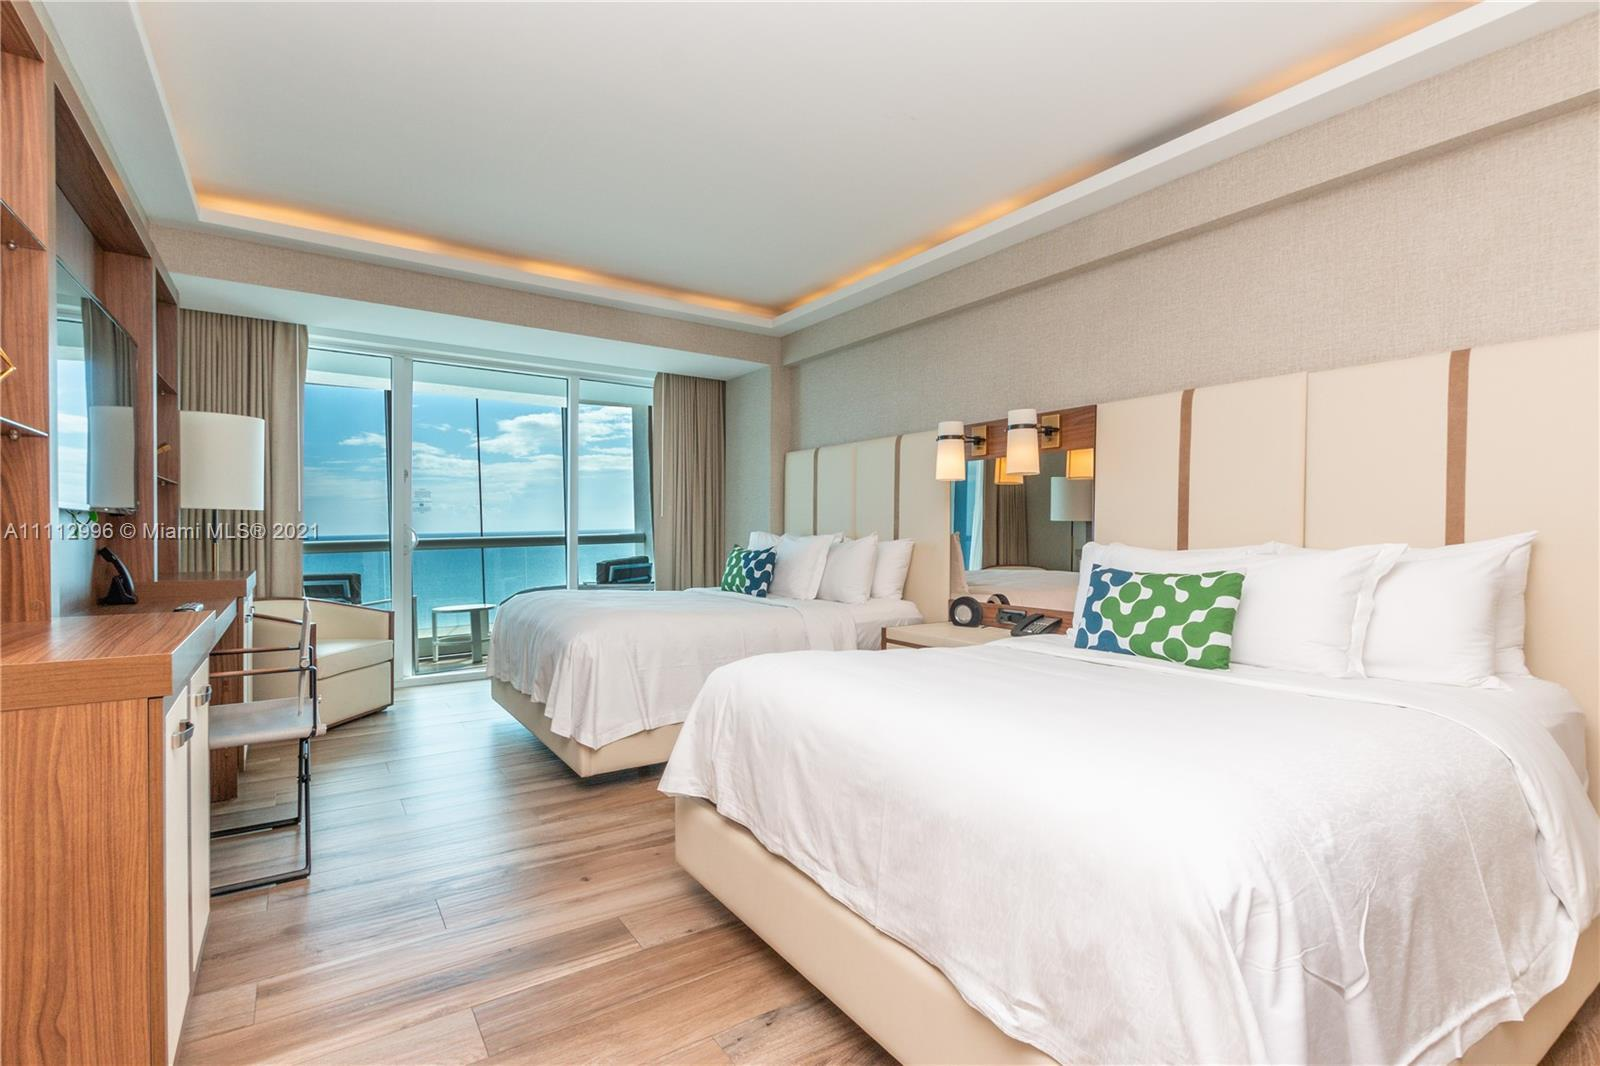 Amazing opportunity to own a turn-key 1 Bed   1.0 Bath in an oceanfront property. Fully furnished. I